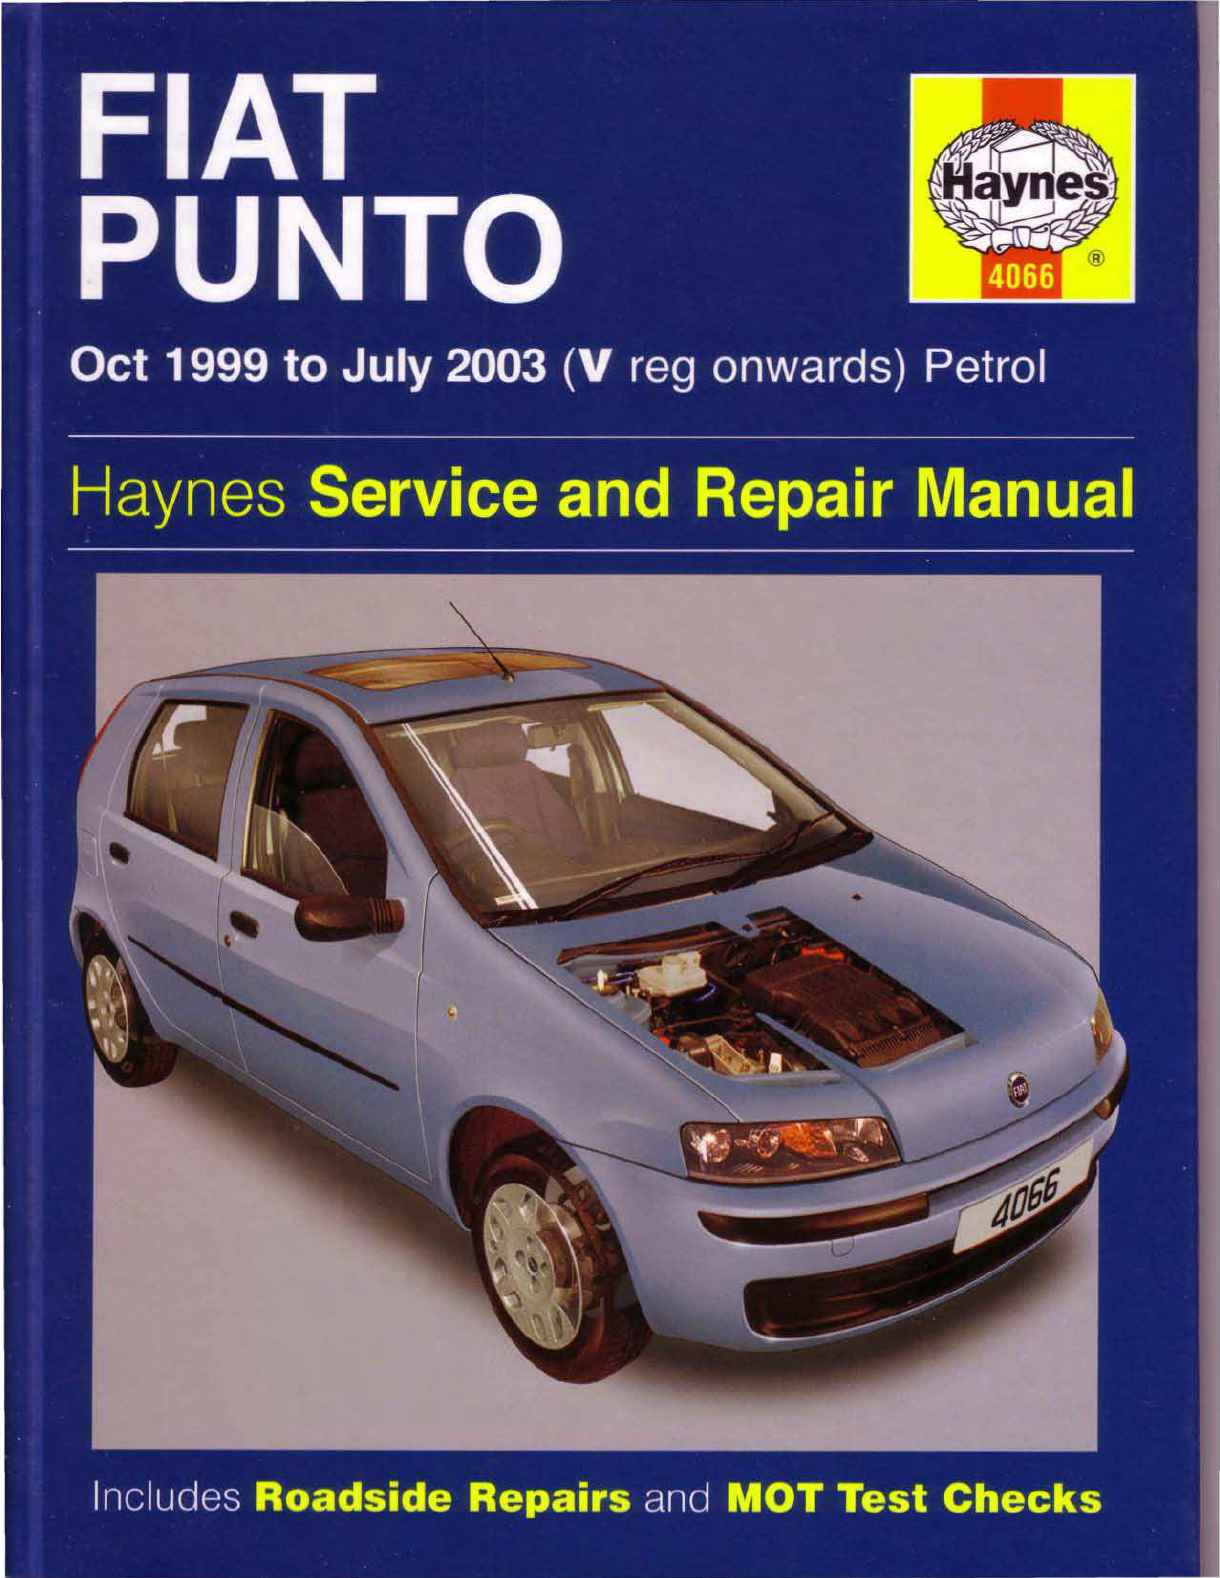 See our other Fiat Punto Manuals: